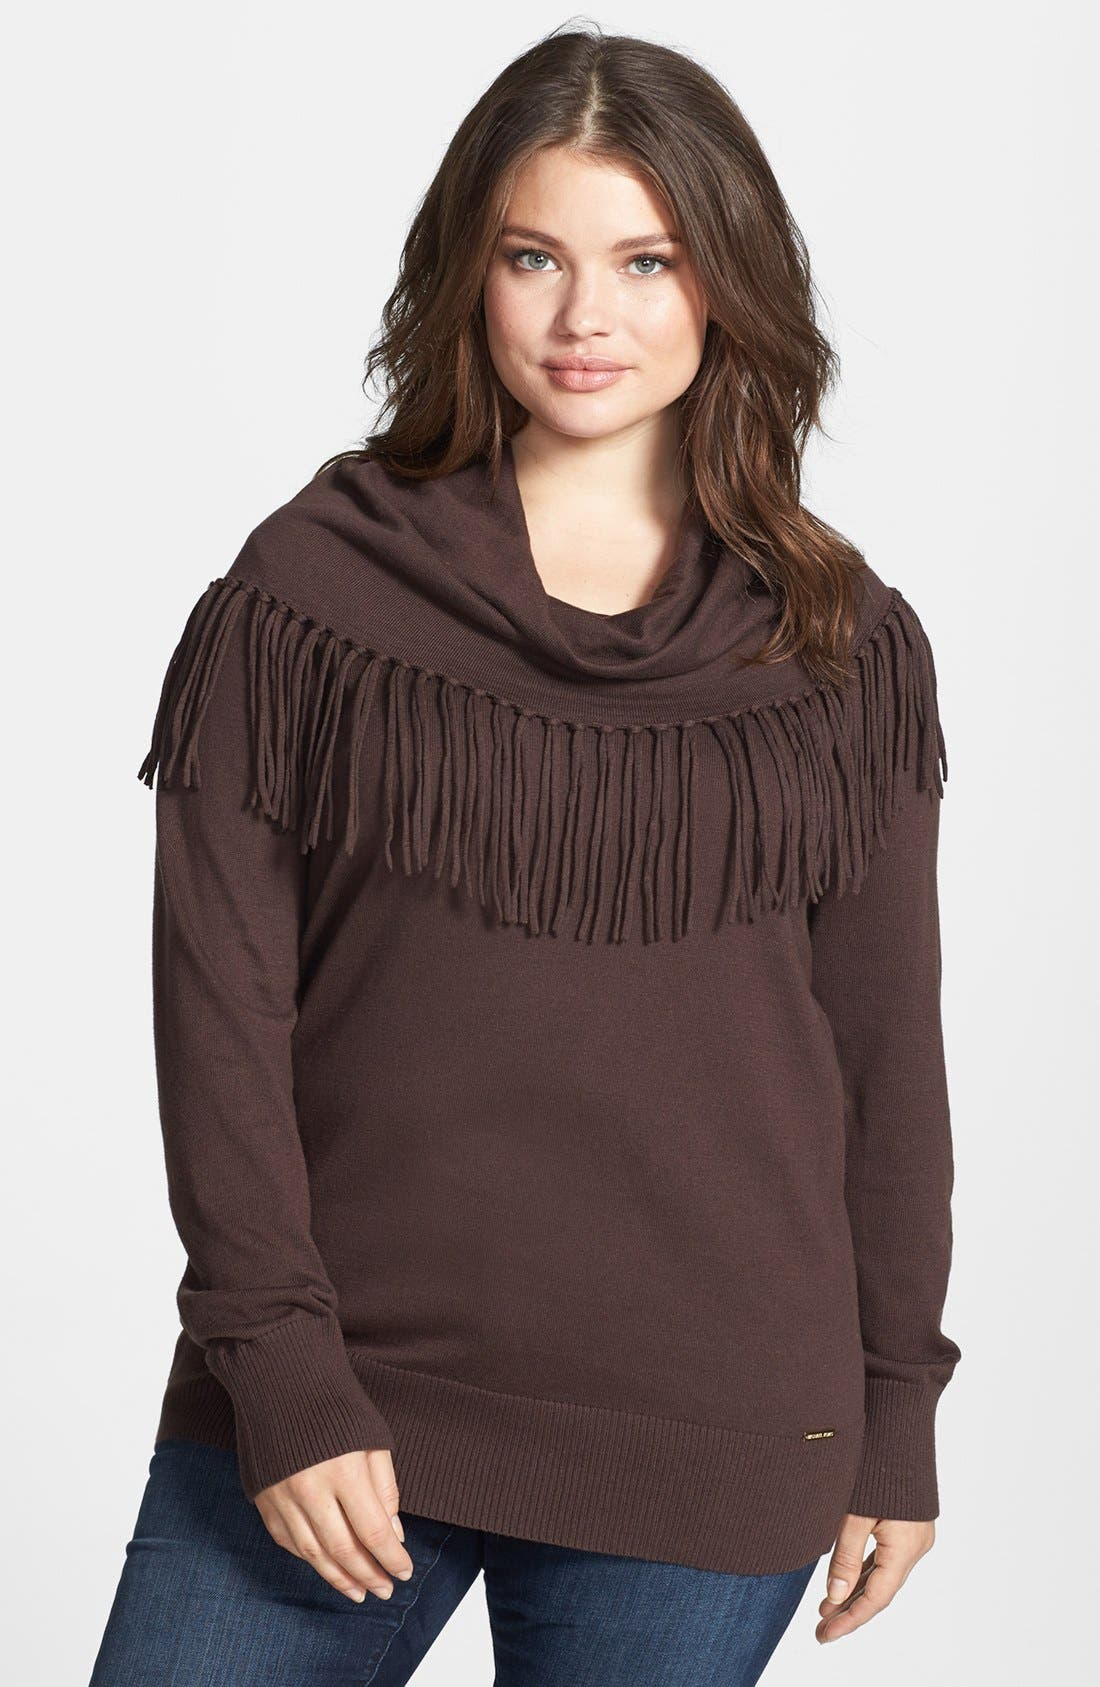 Alternate Image 1 Selected - MICHAEL Michael Kors Fringed Cowl Neck Sweater (Plus Size)